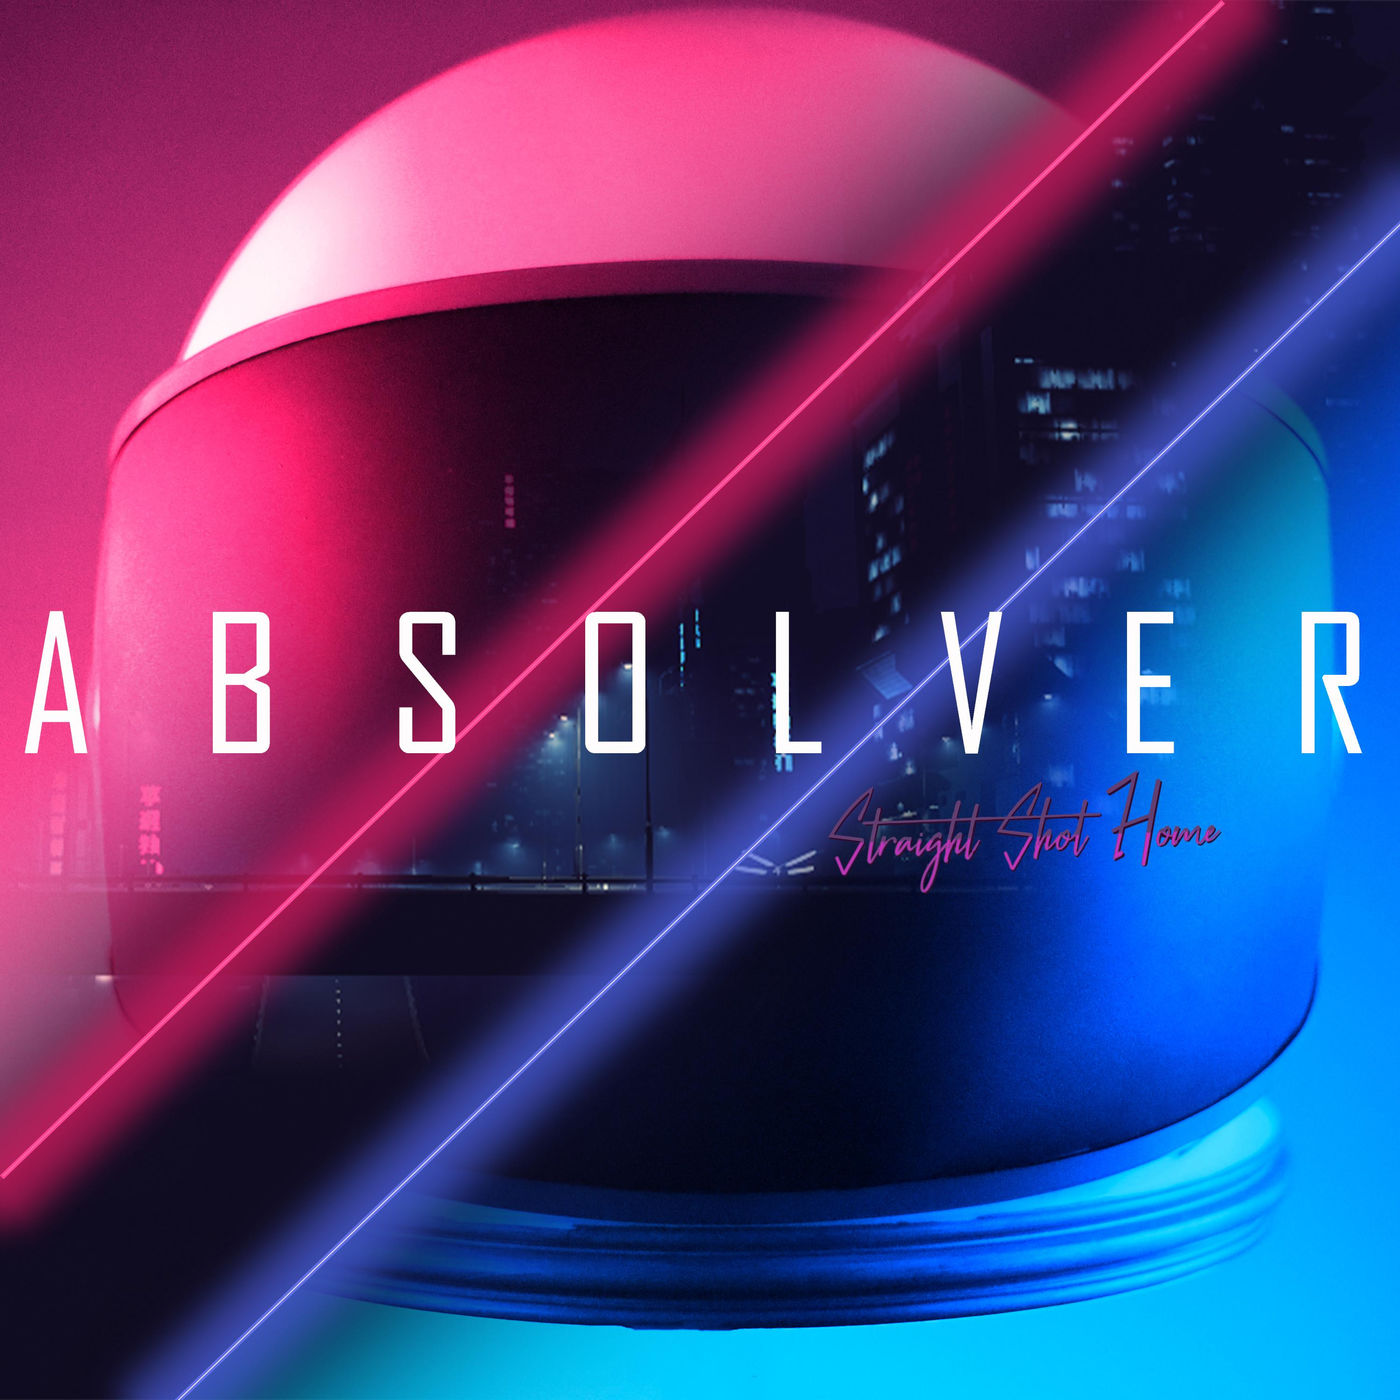 Straight Shot Home - Absolver [single] (2020)